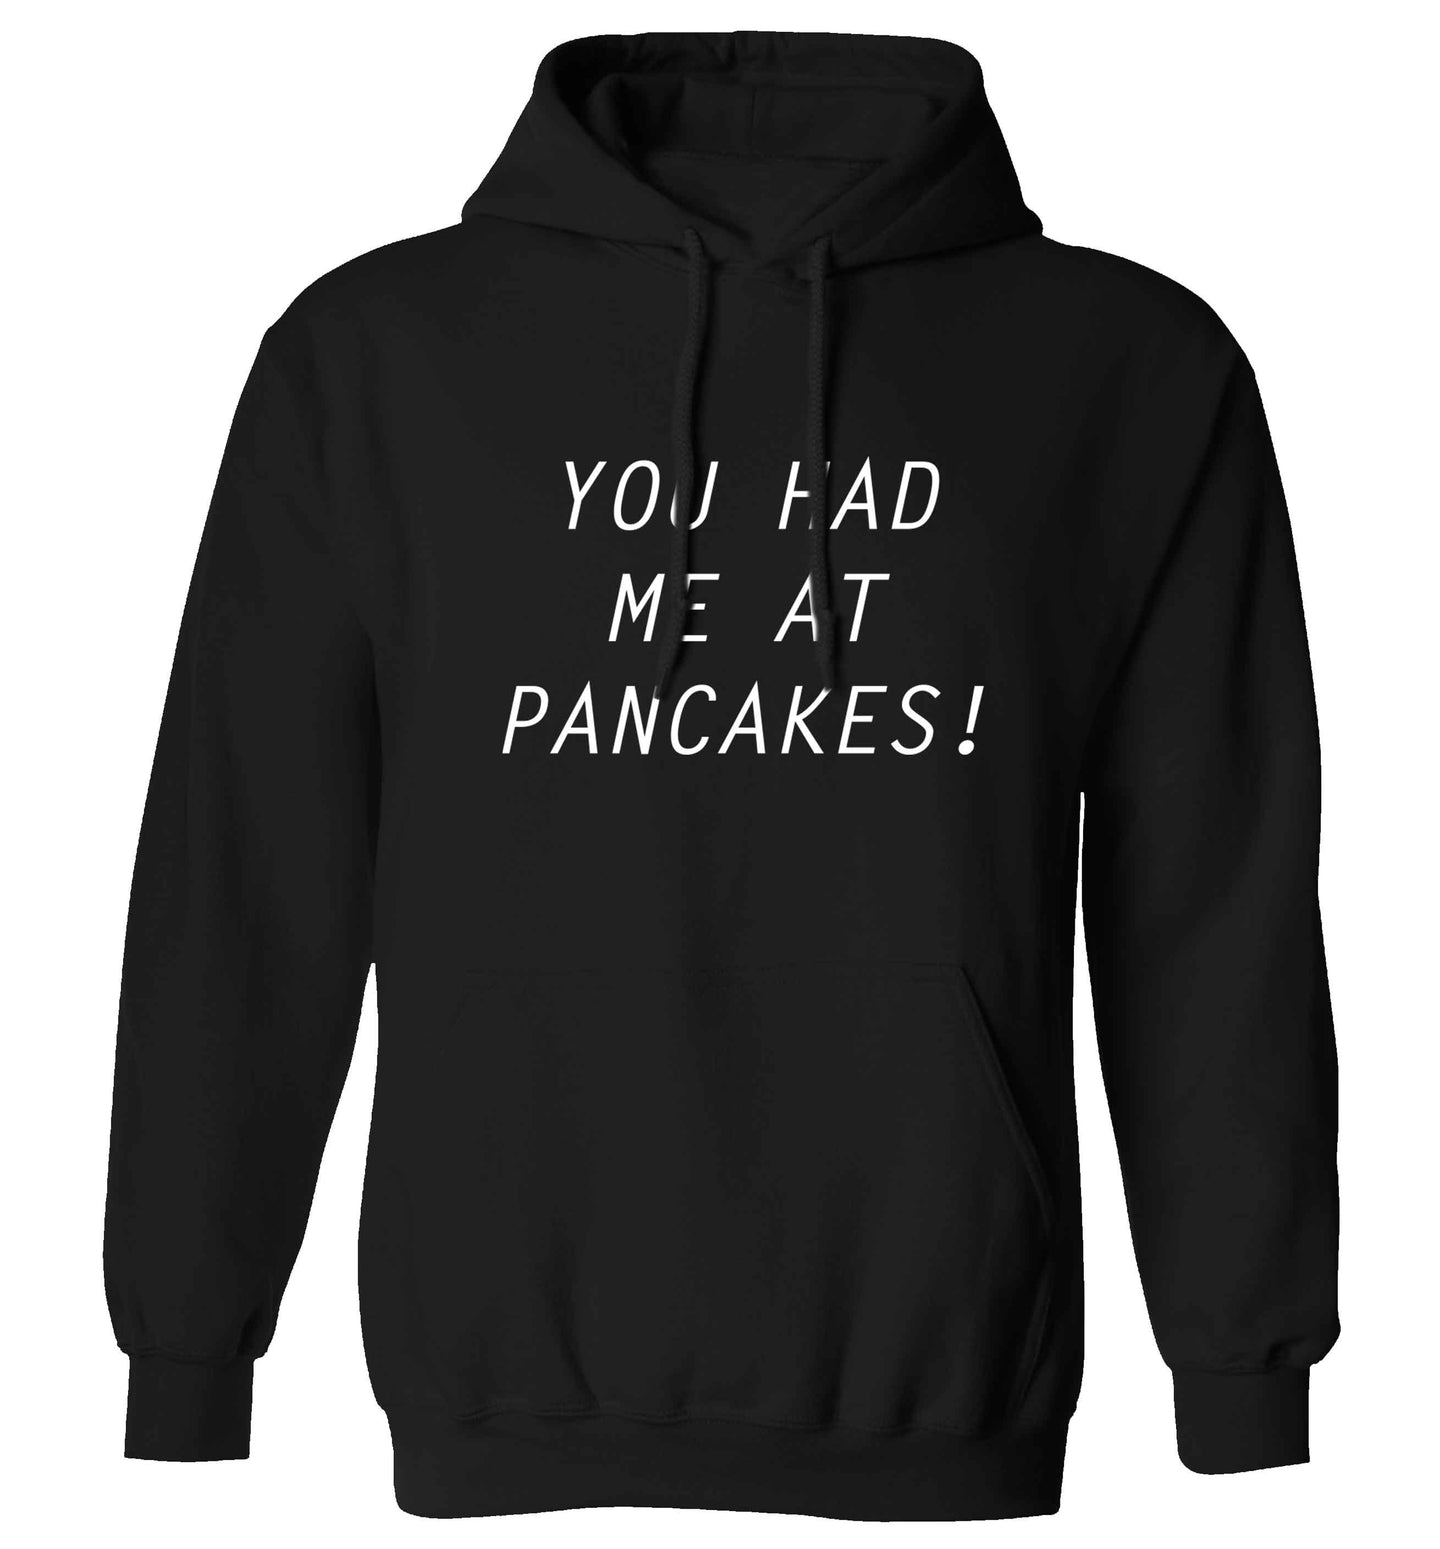 You had me at pancakes adults unisex black hoodie 2XL